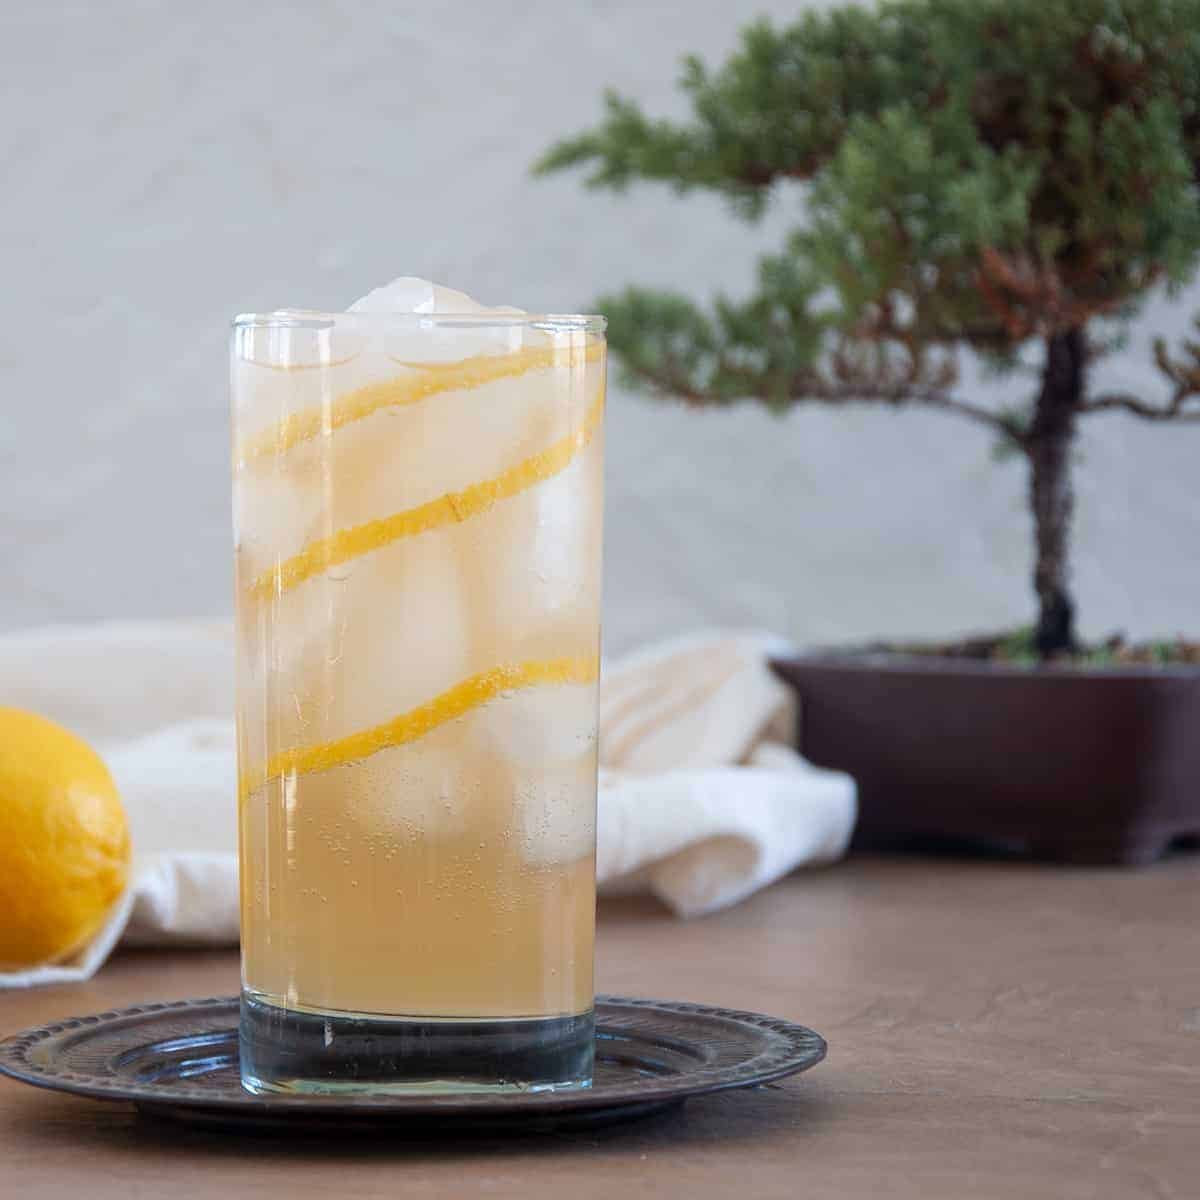 A single Horse's Neck Cocktail on a serving plate with a lemon and bonsai tree in the background.